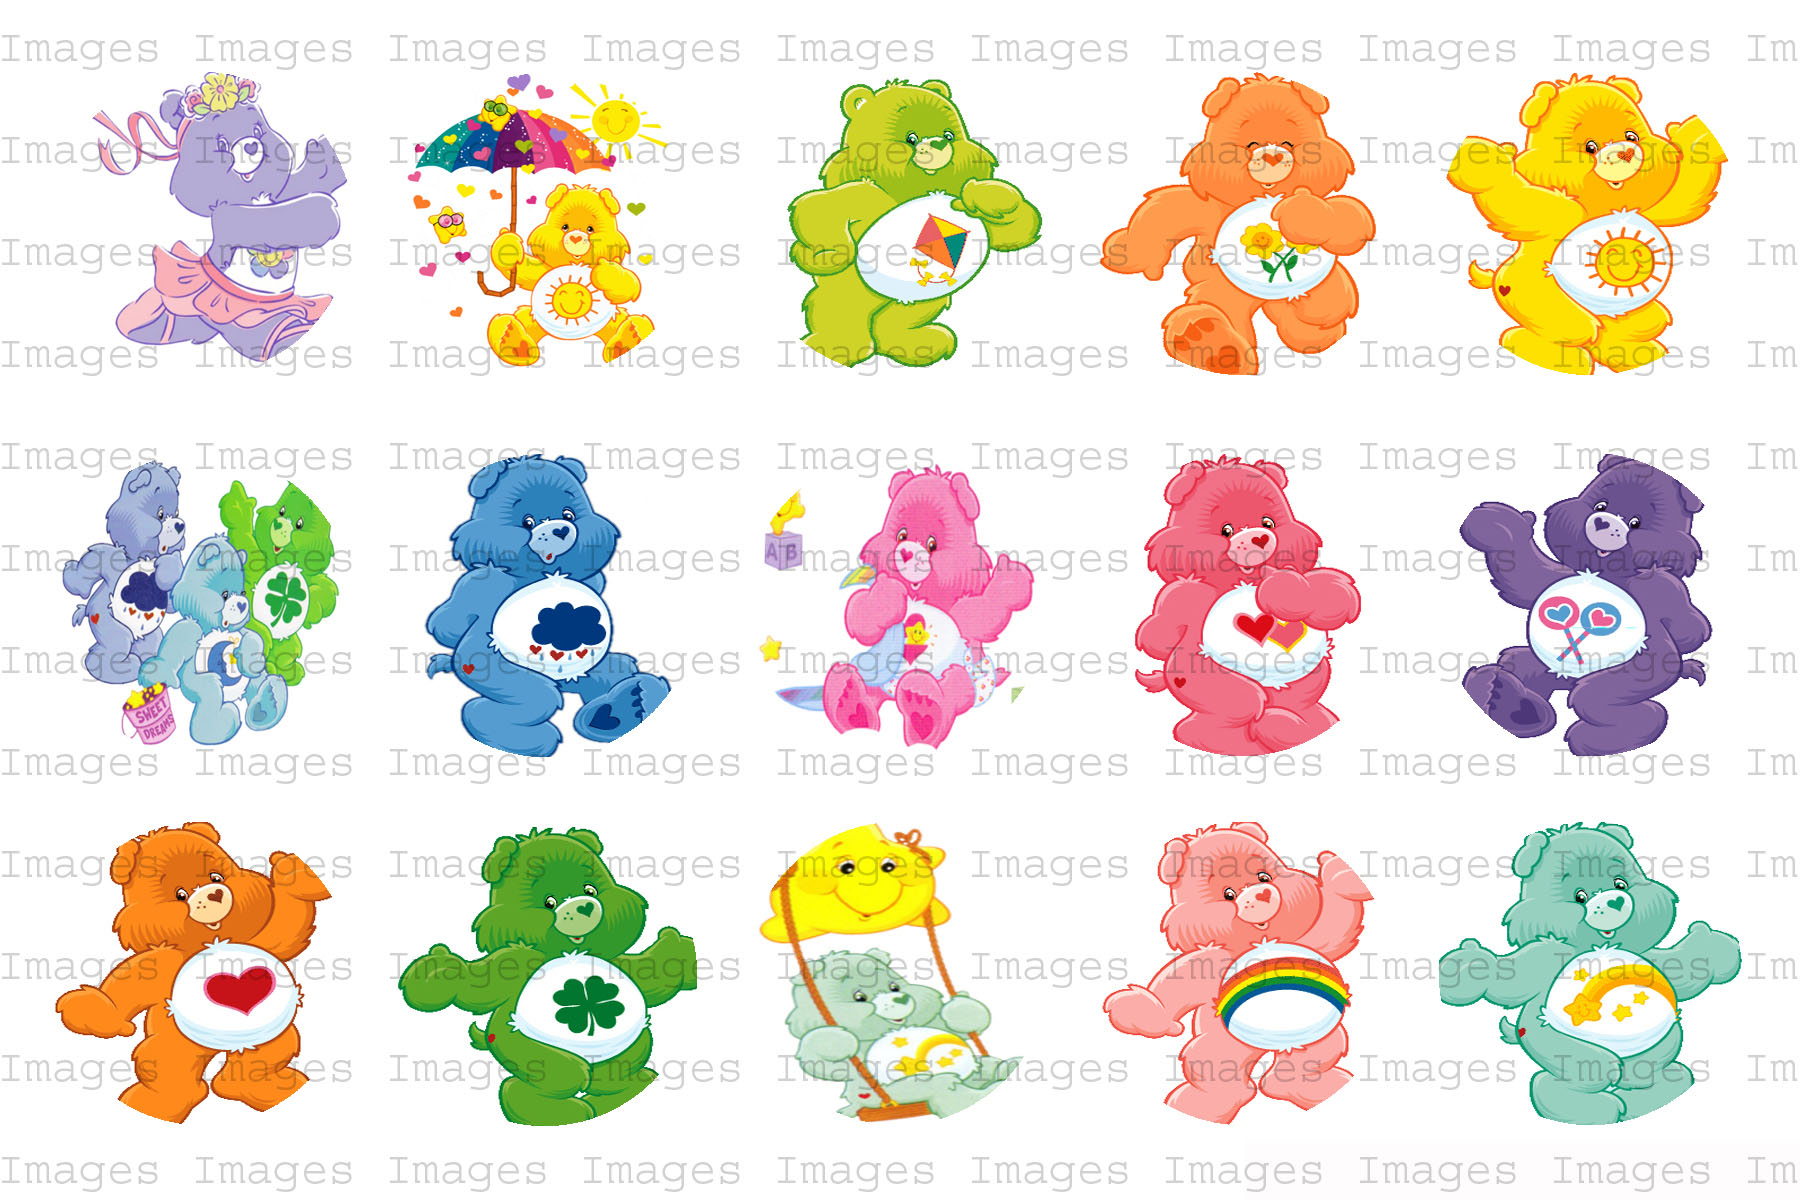 Bottlecapsimages50centpersheet : Carebears : Online Store Powered by ...